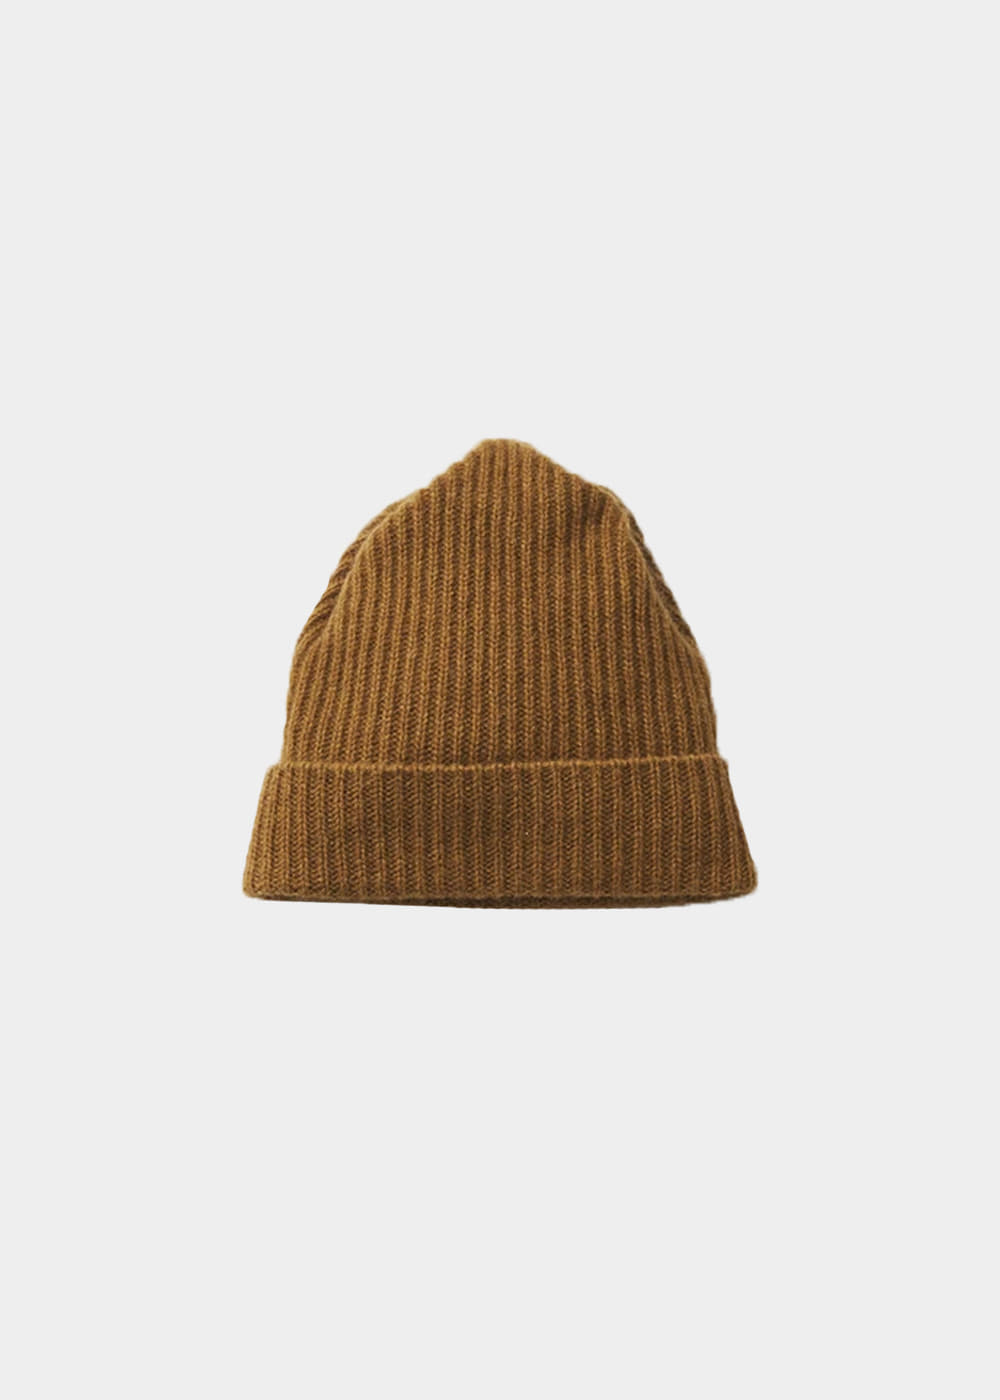 pleats knit cap -mustard